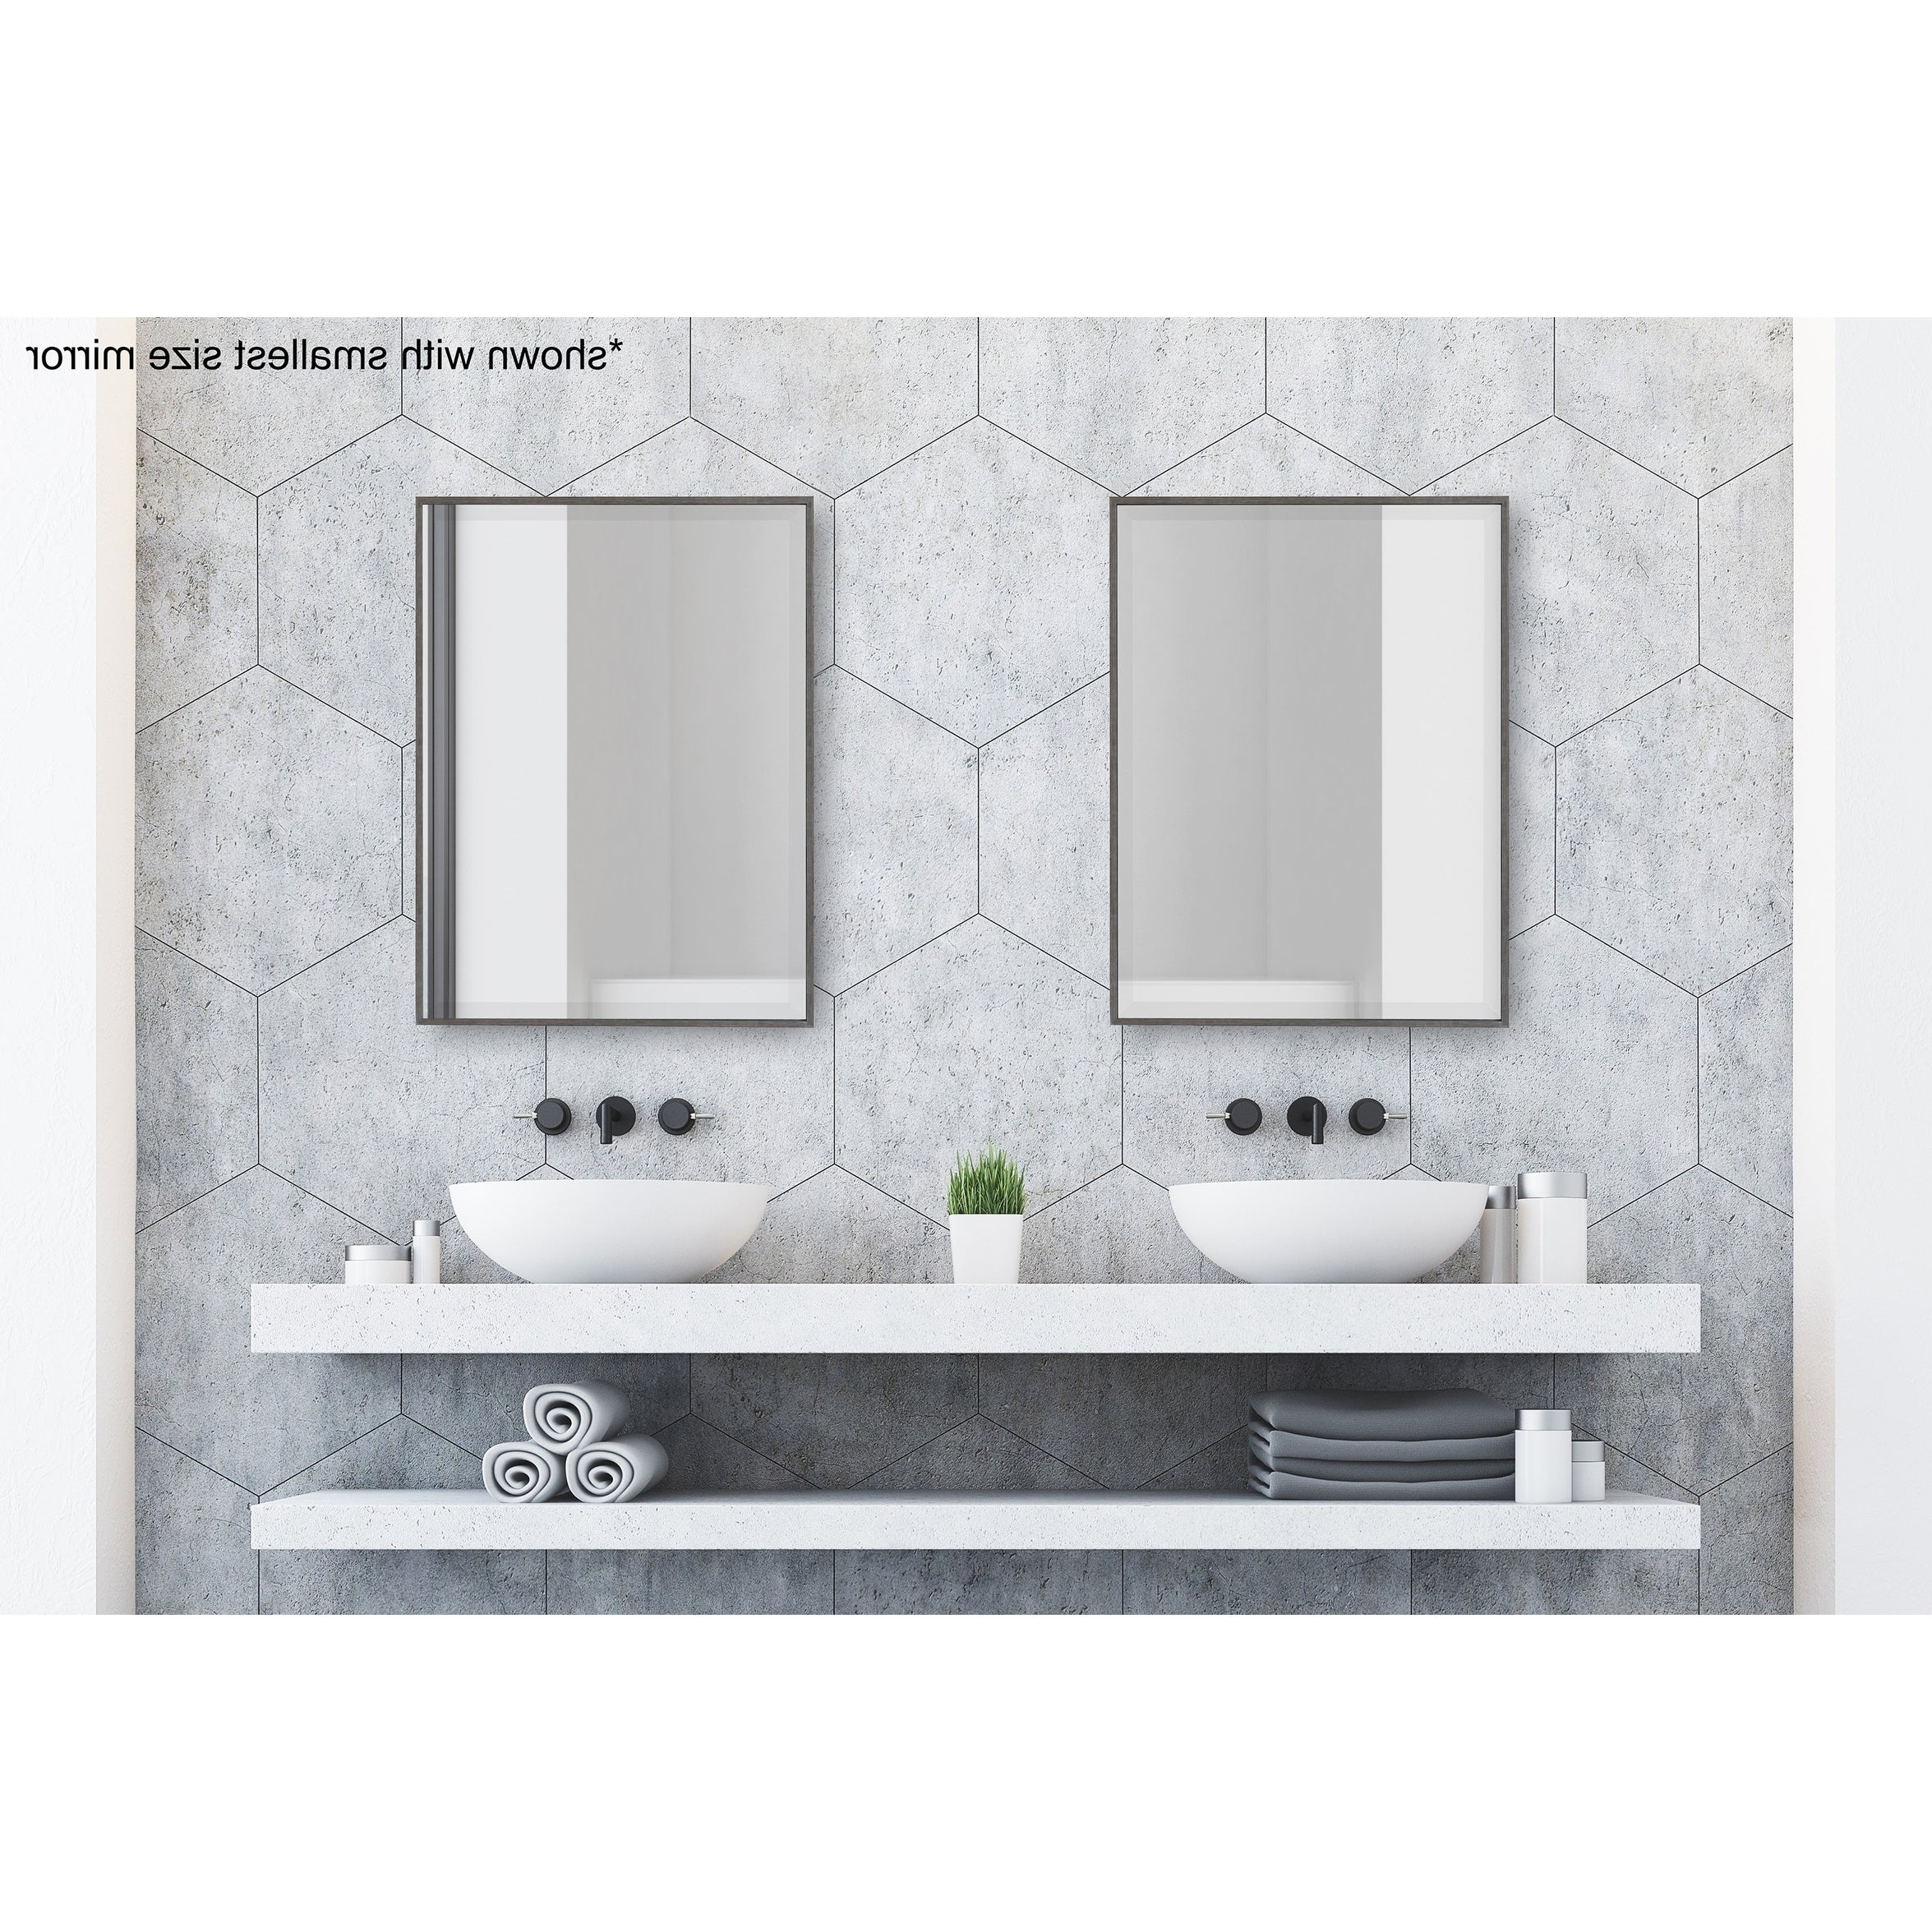 Shop Online At Overstock Intended For Oversized Wall Mirrors (View 18 of 20)